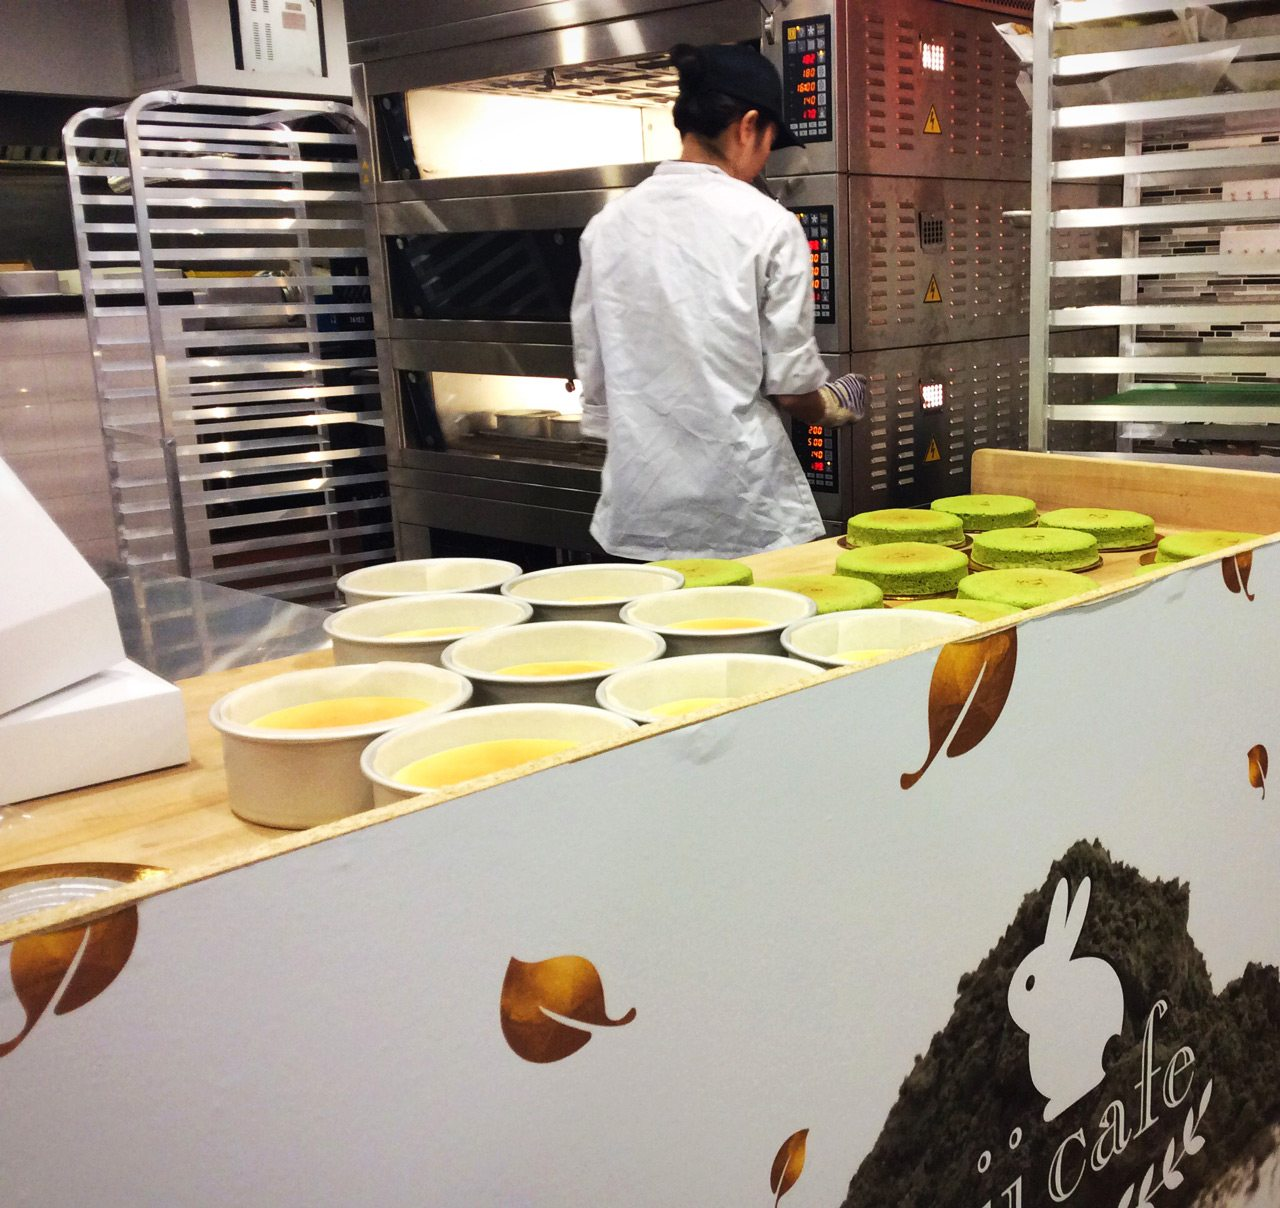 The cheesecakes, baked in a water bath, are made throughout the day